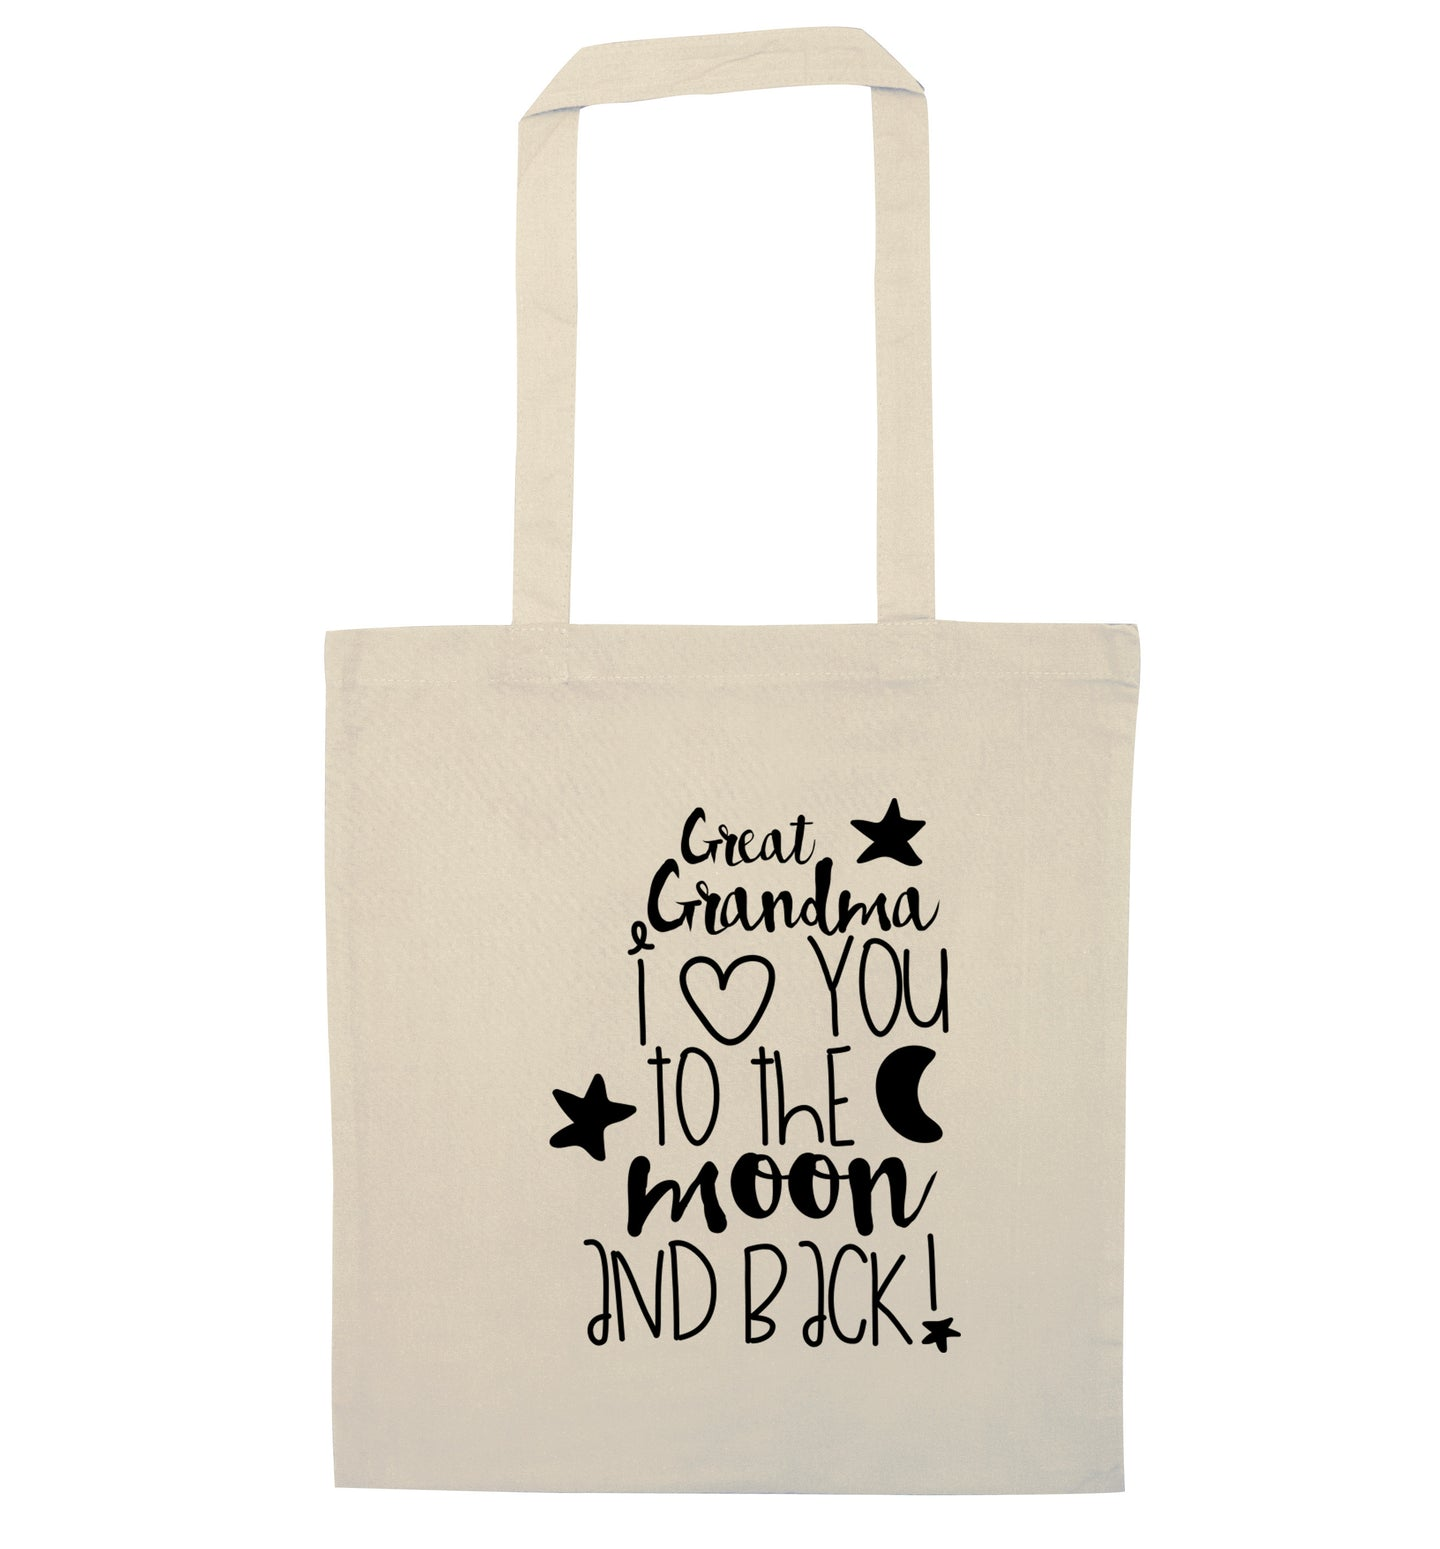 Great Grandma I love you to the moon and back natural tote bag